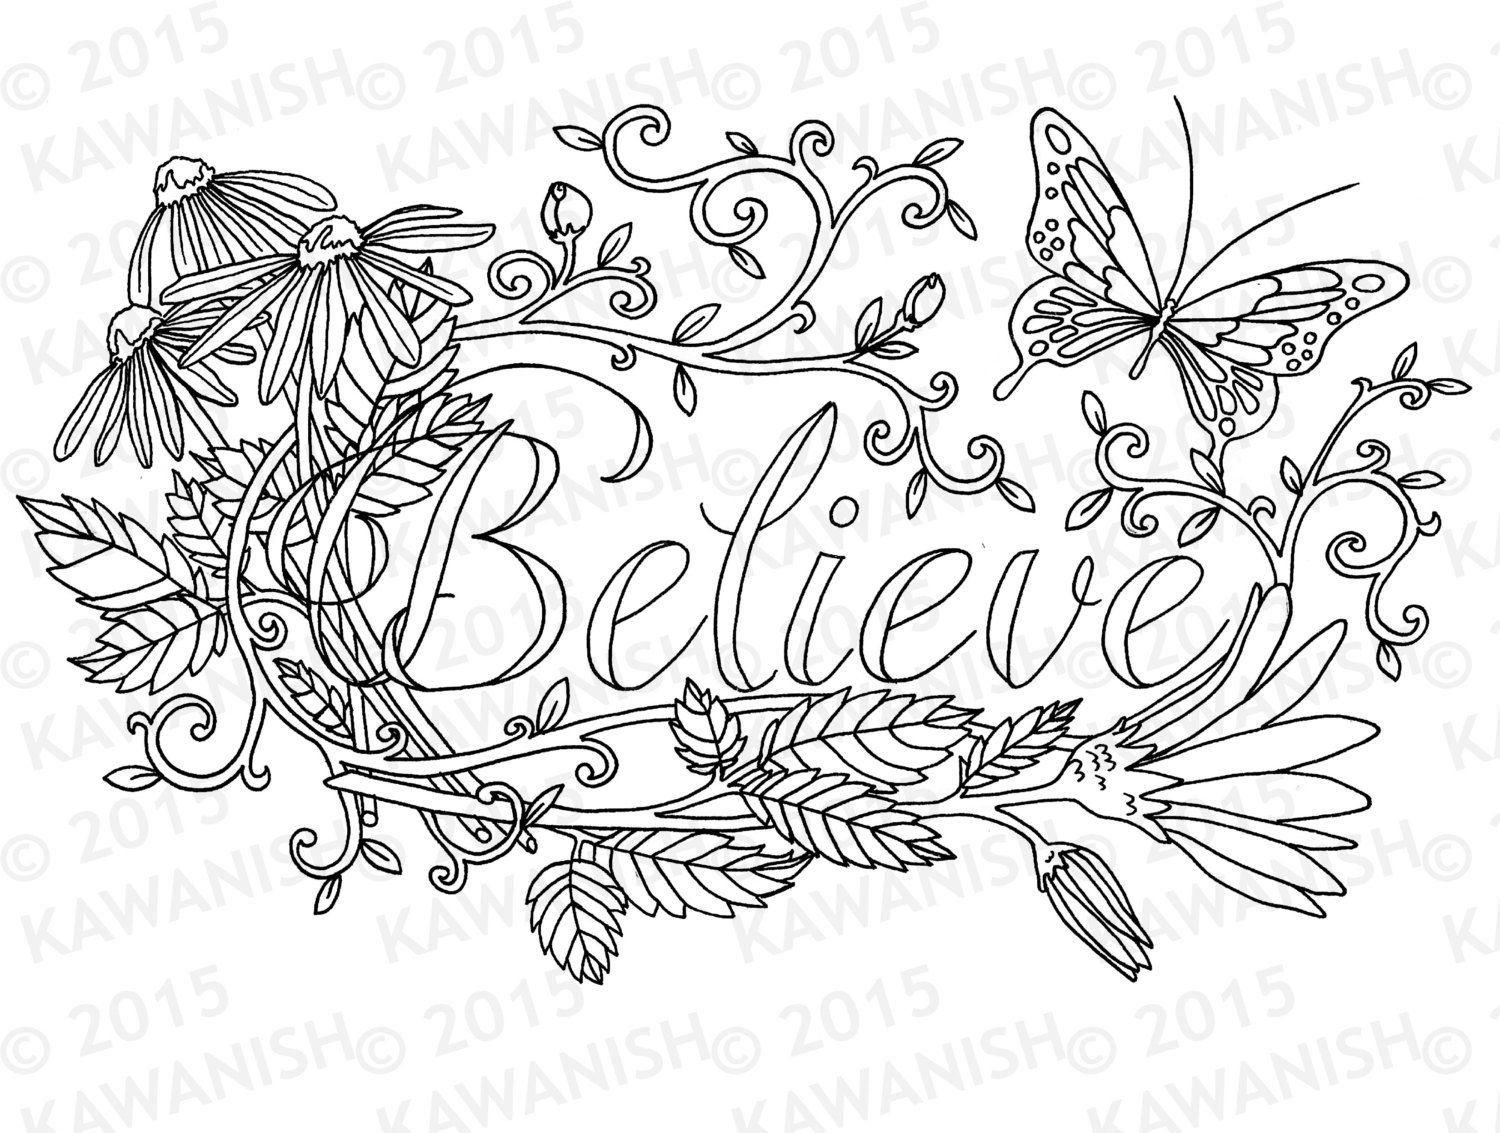 18 Printable Coloring Quote Pages For Adults Coloring Pages Inspirational Spring Coloring Sheets Spring Coloring Pages